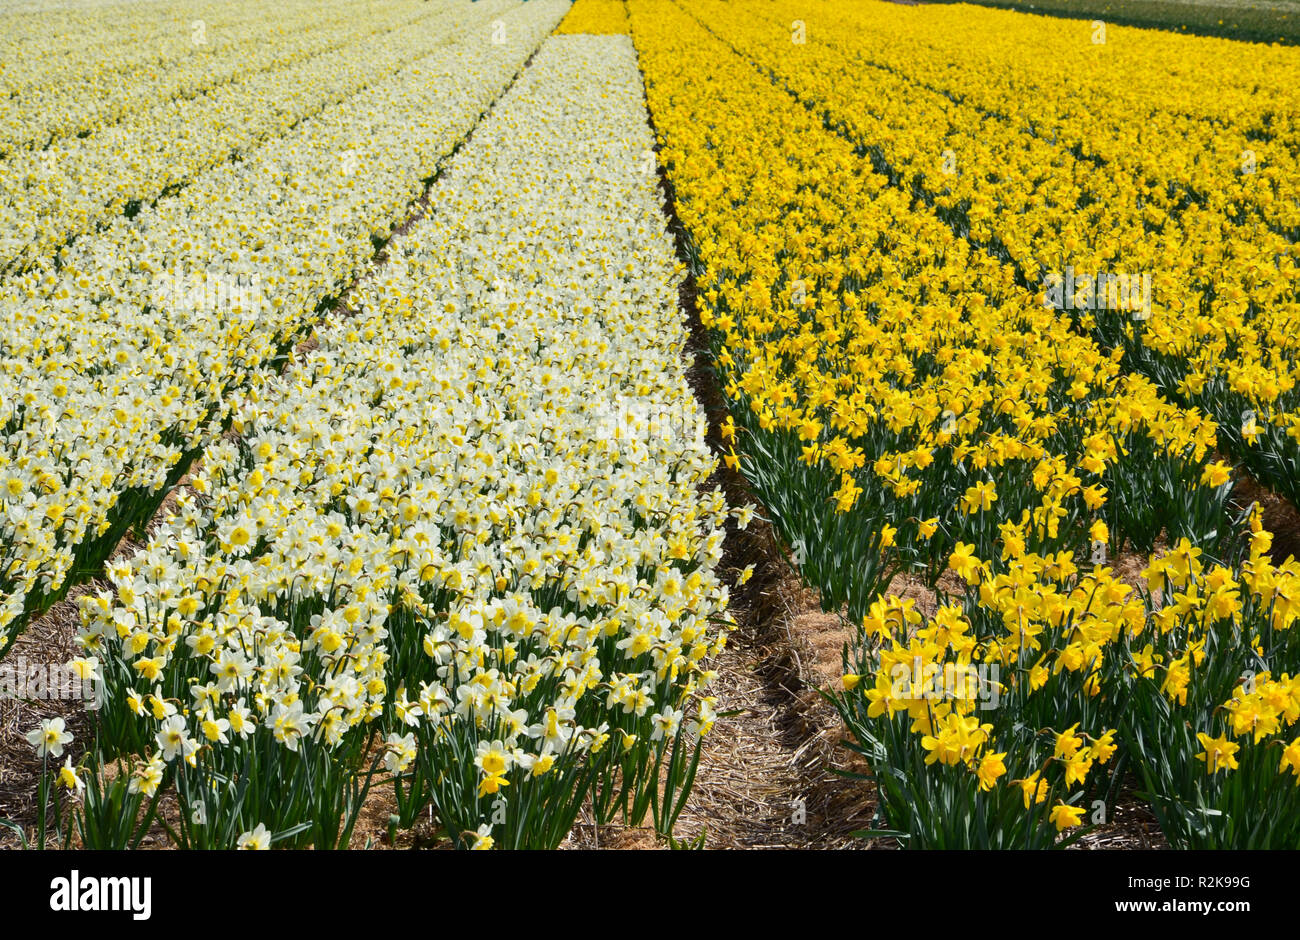 Blooming yellow daffodils in rows on a field near Amsterdam, spring, flowers, botany, agriculture, business, season, Easter holidays, sunny Stock Photo